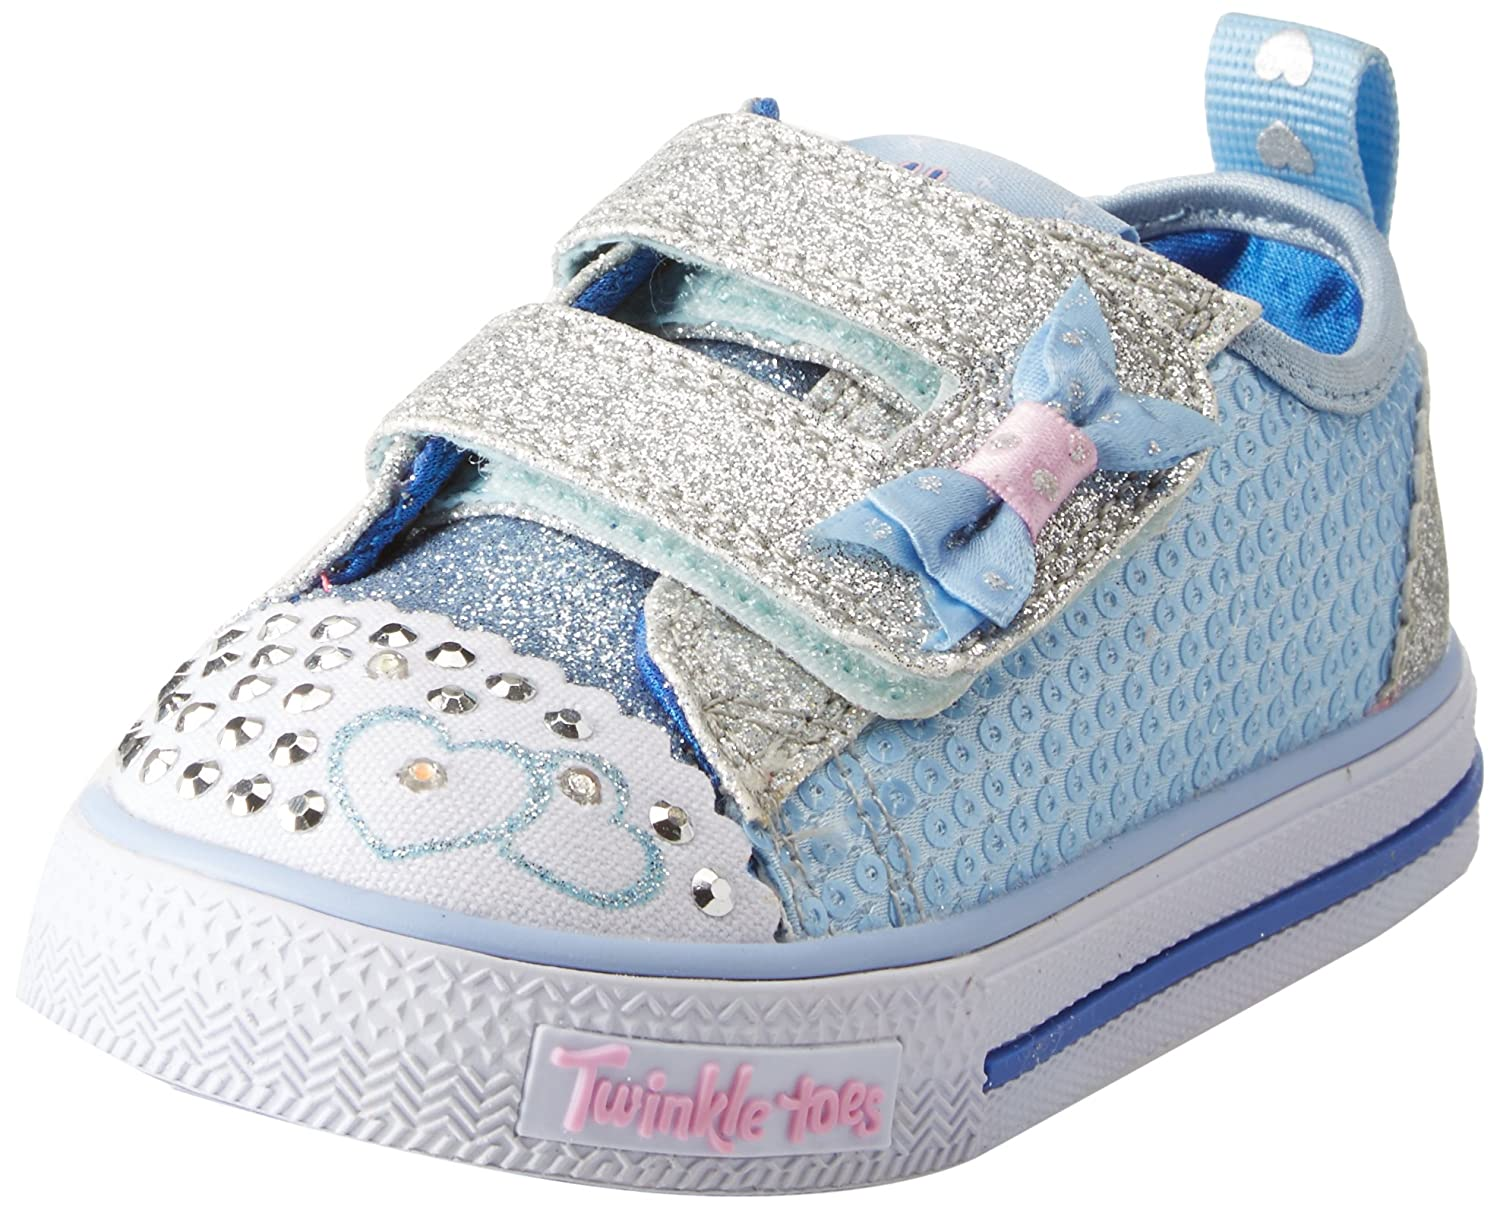 Skechers Baby Girls' Shuffles-Itsy Bitsy Trainers 10764N